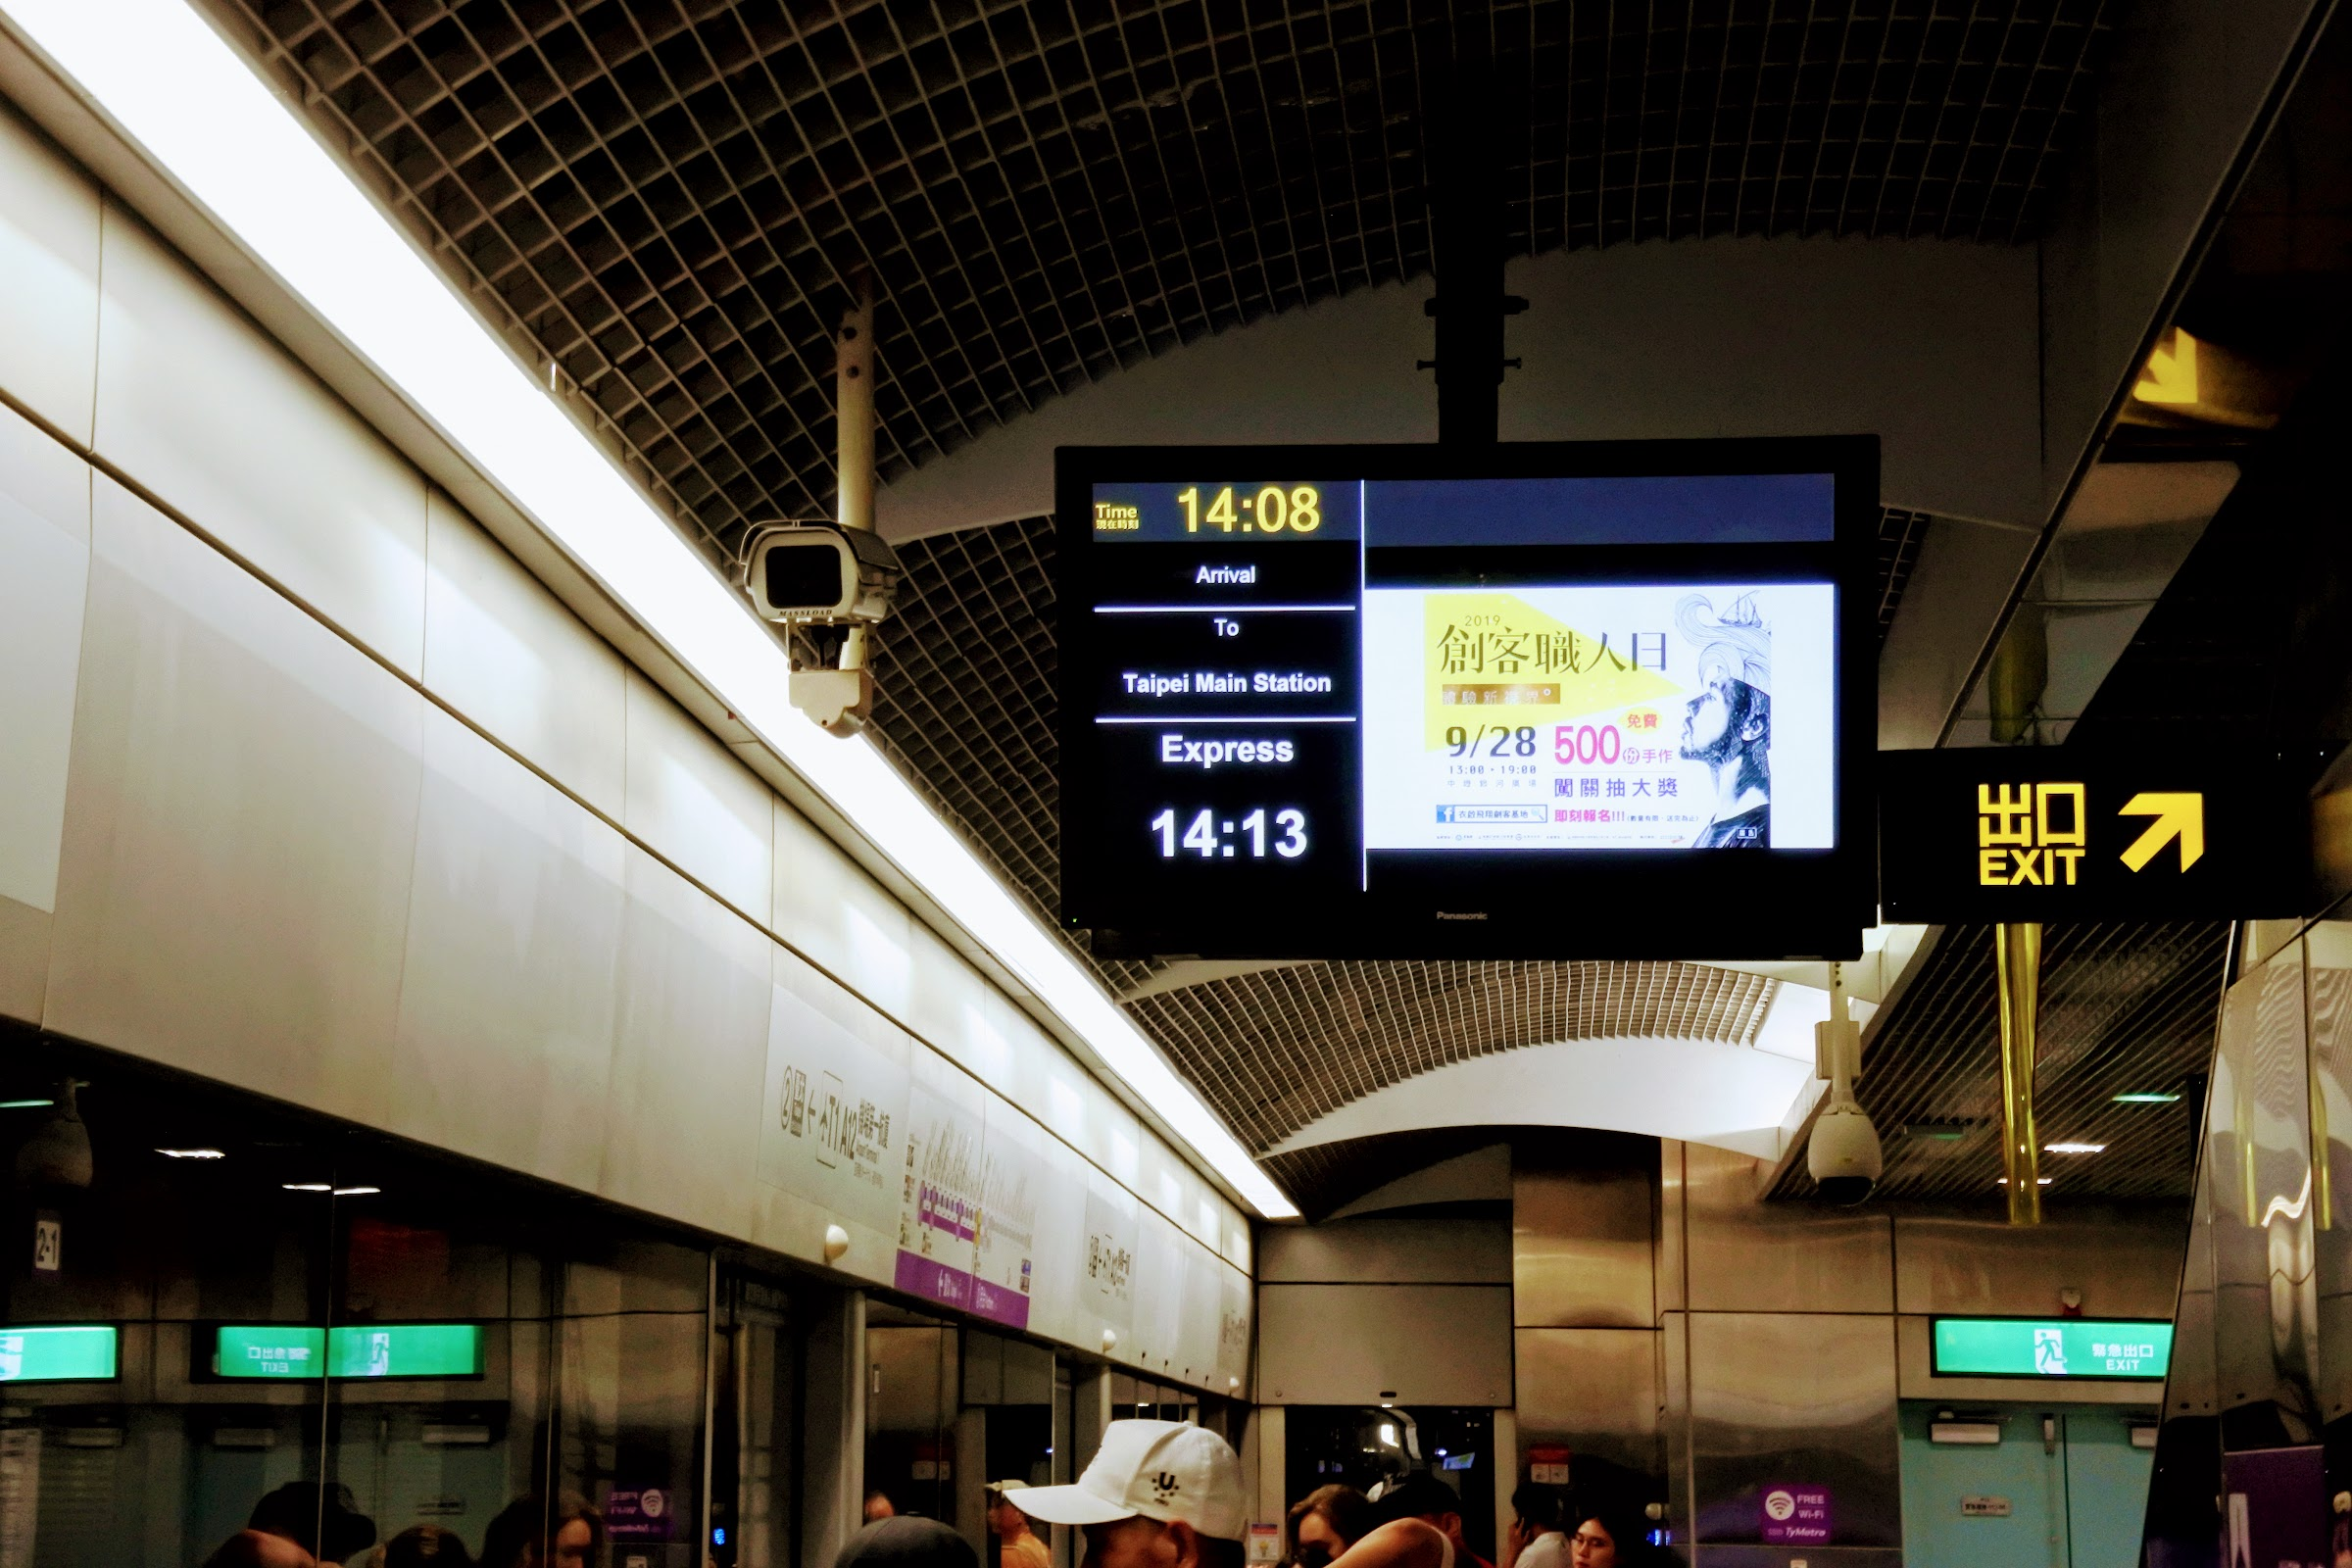 Taking the Express MRT train is the cheapest way to Taipei from Taoyuan Airport